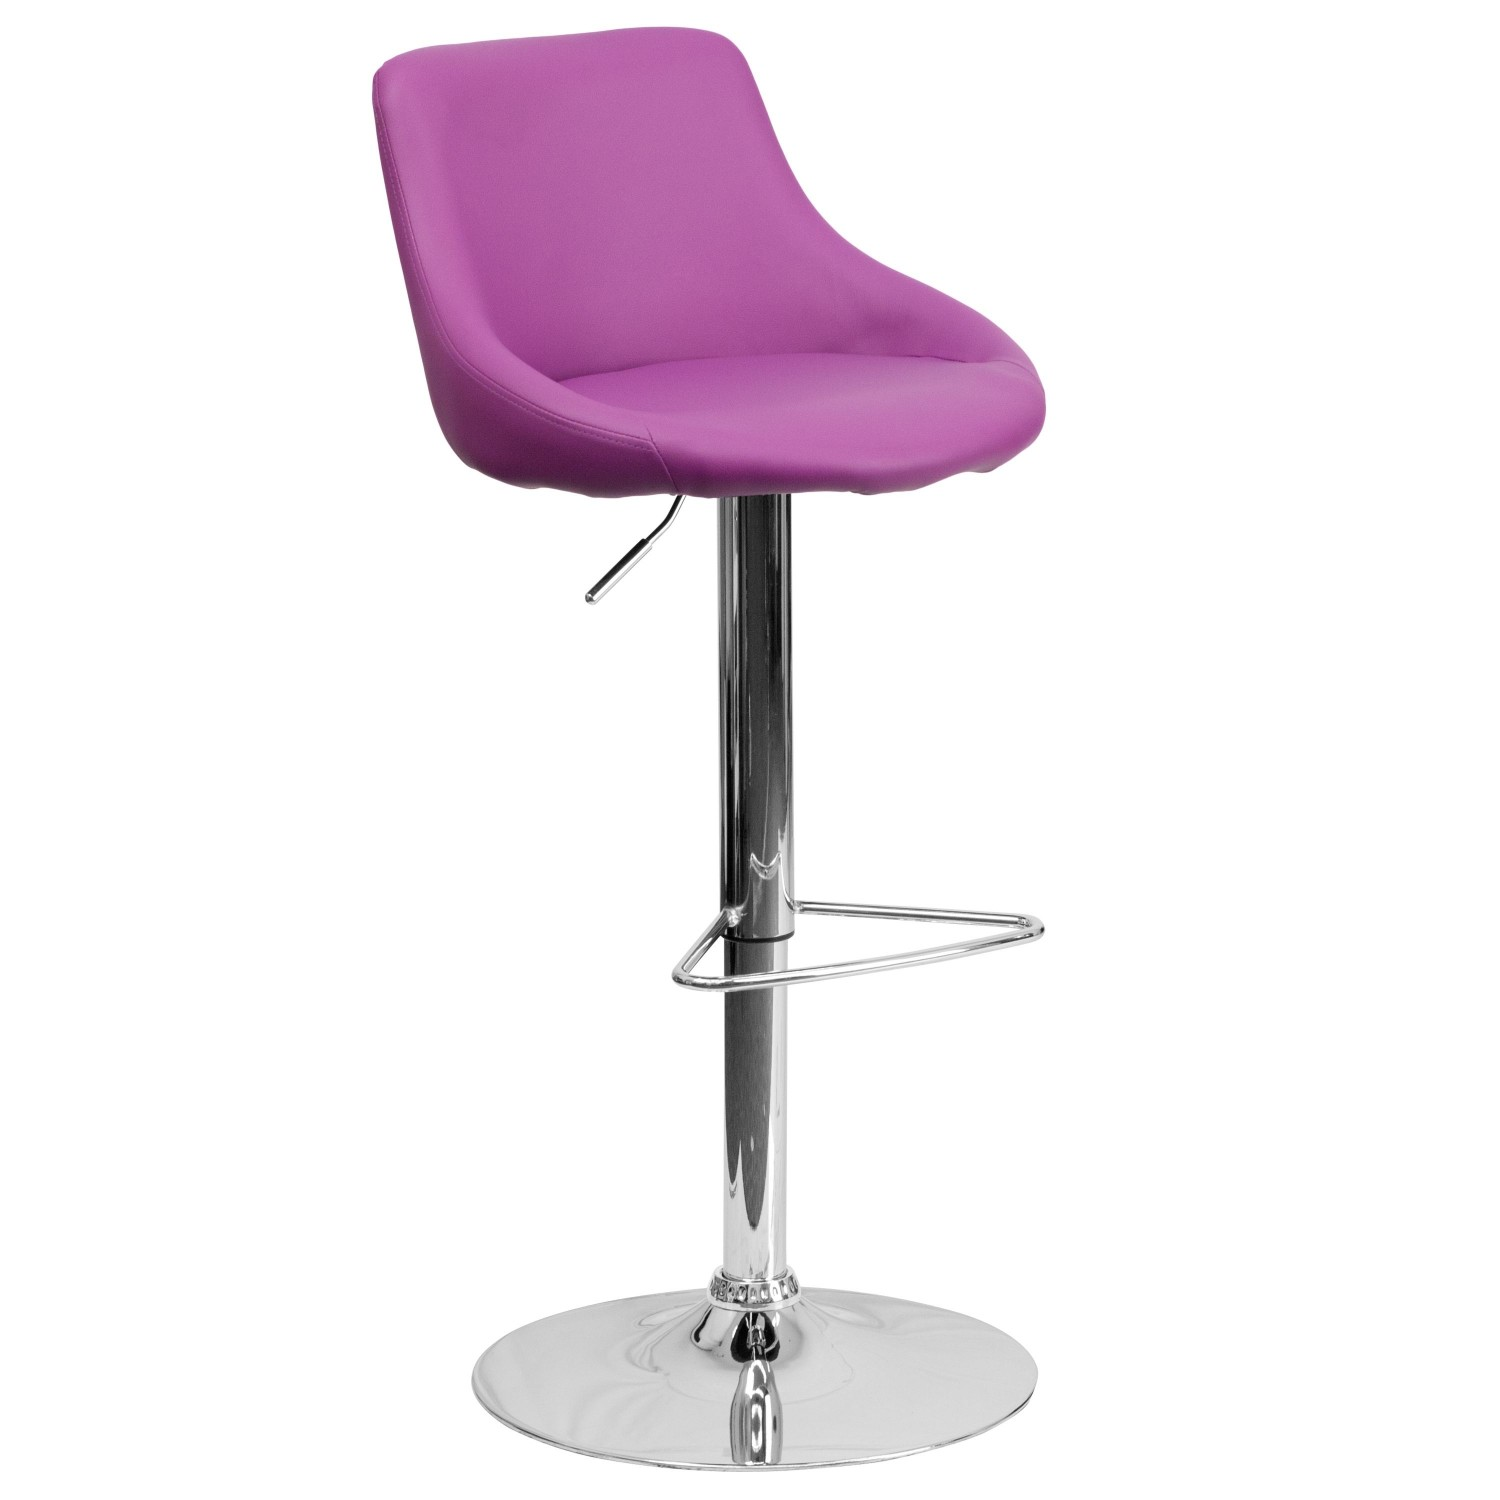 Flash Furniture CH-82028-MOD-PUR-GG Contemporary Purple Vinyl Bucket Seat Adjustable Height Bar Stool